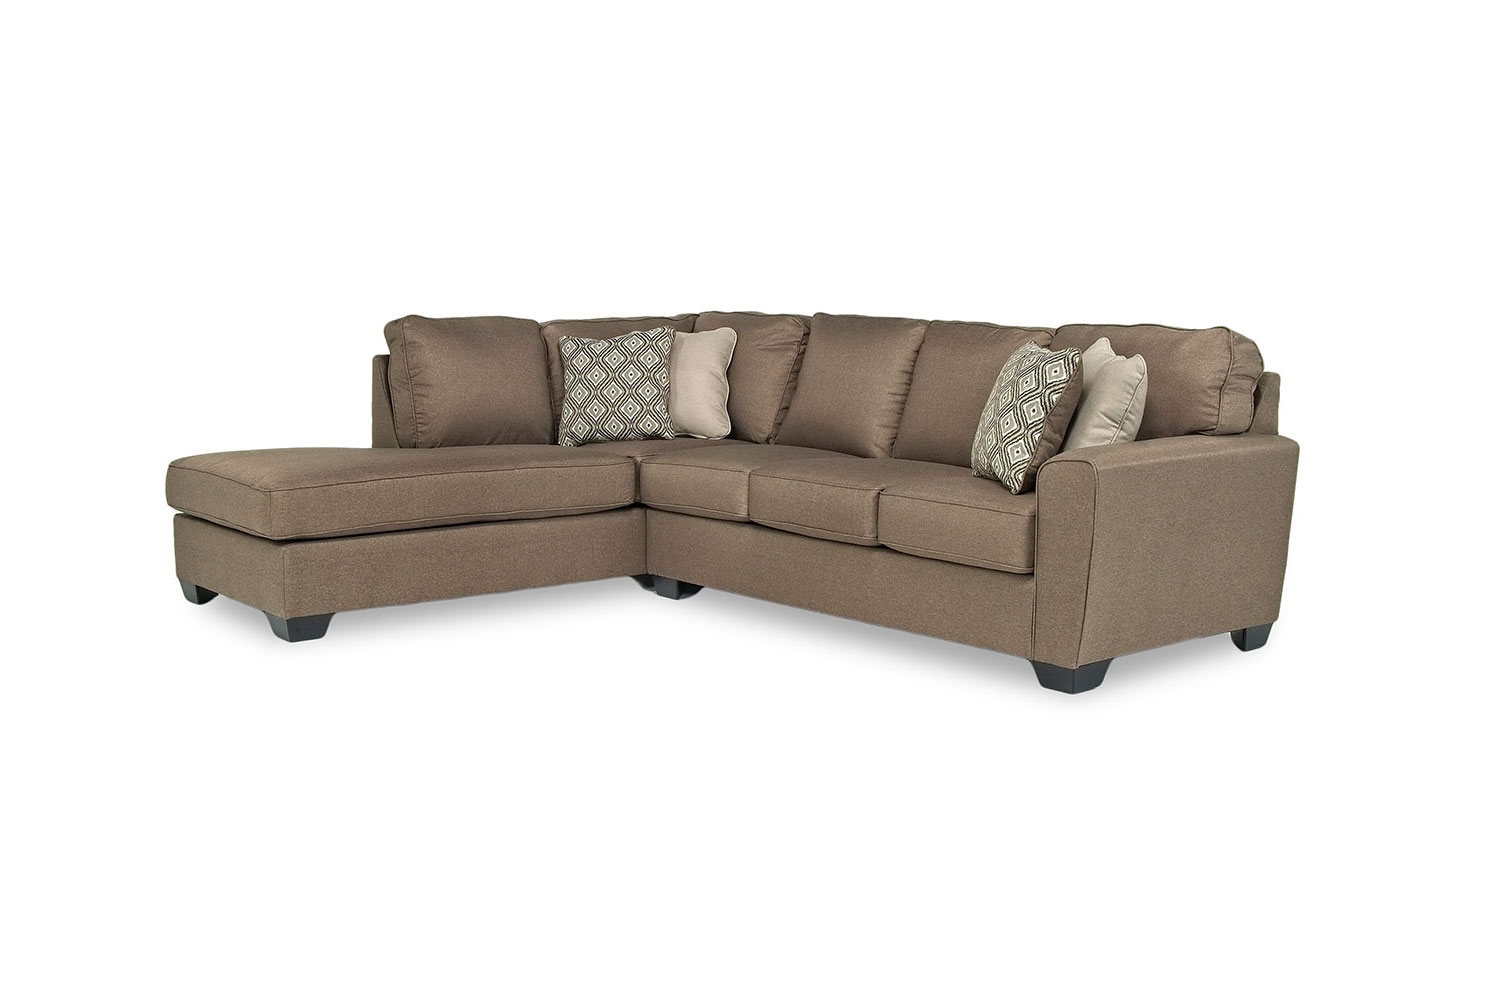 Sofa Mart Idaho Falls West Coast S Home Furniture Store Mor Furniture For Less